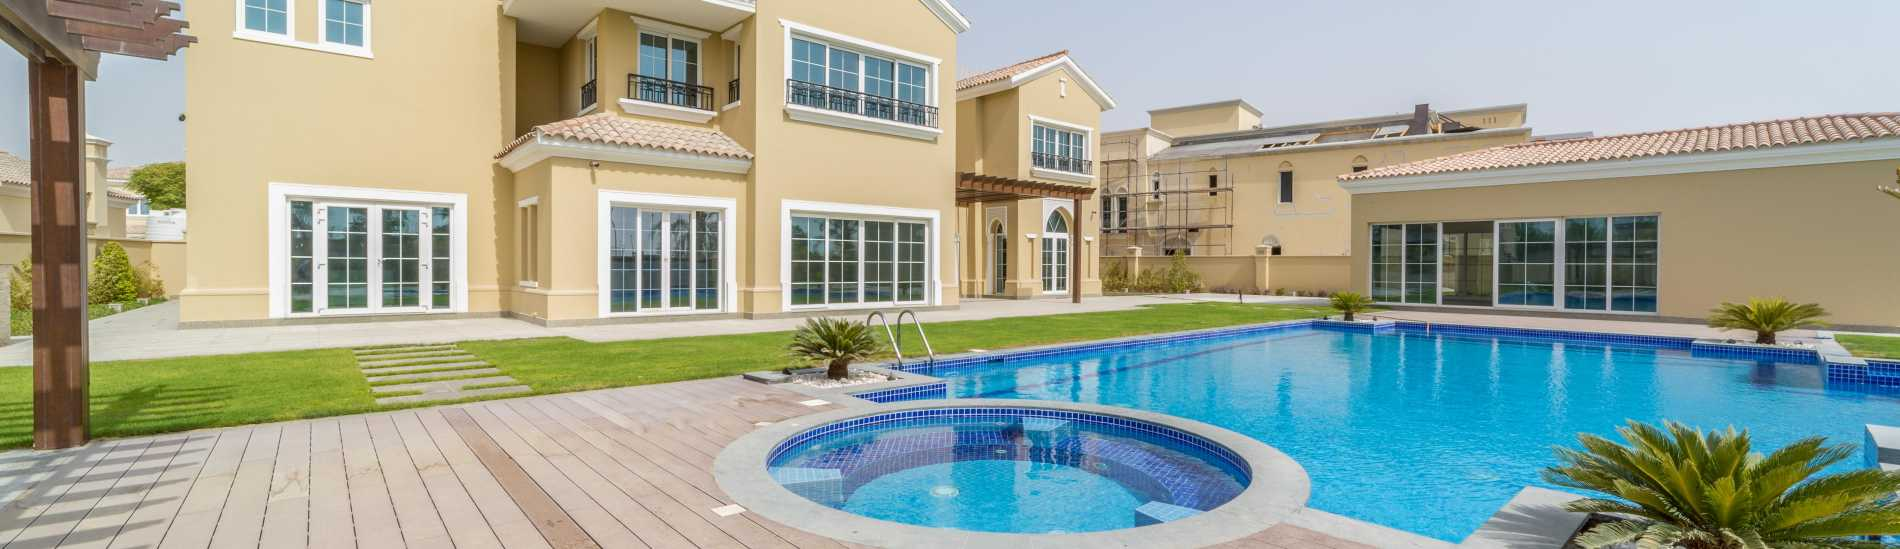 Polo Homes - The Best Villas at Arabian Ranches